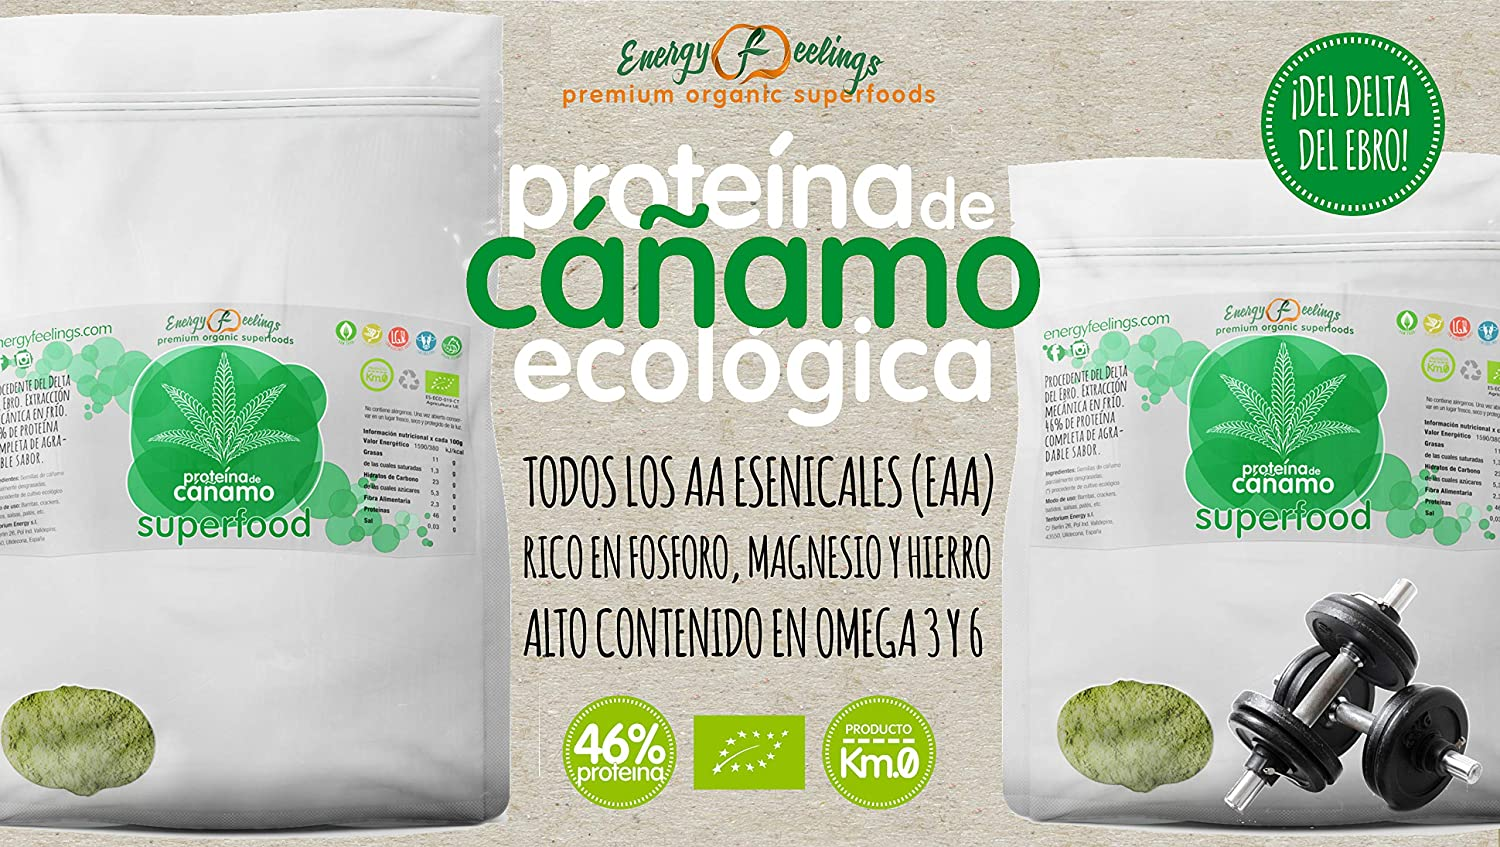 Energy Feelings Proteína de Cáñamo Eco - 1000 gr